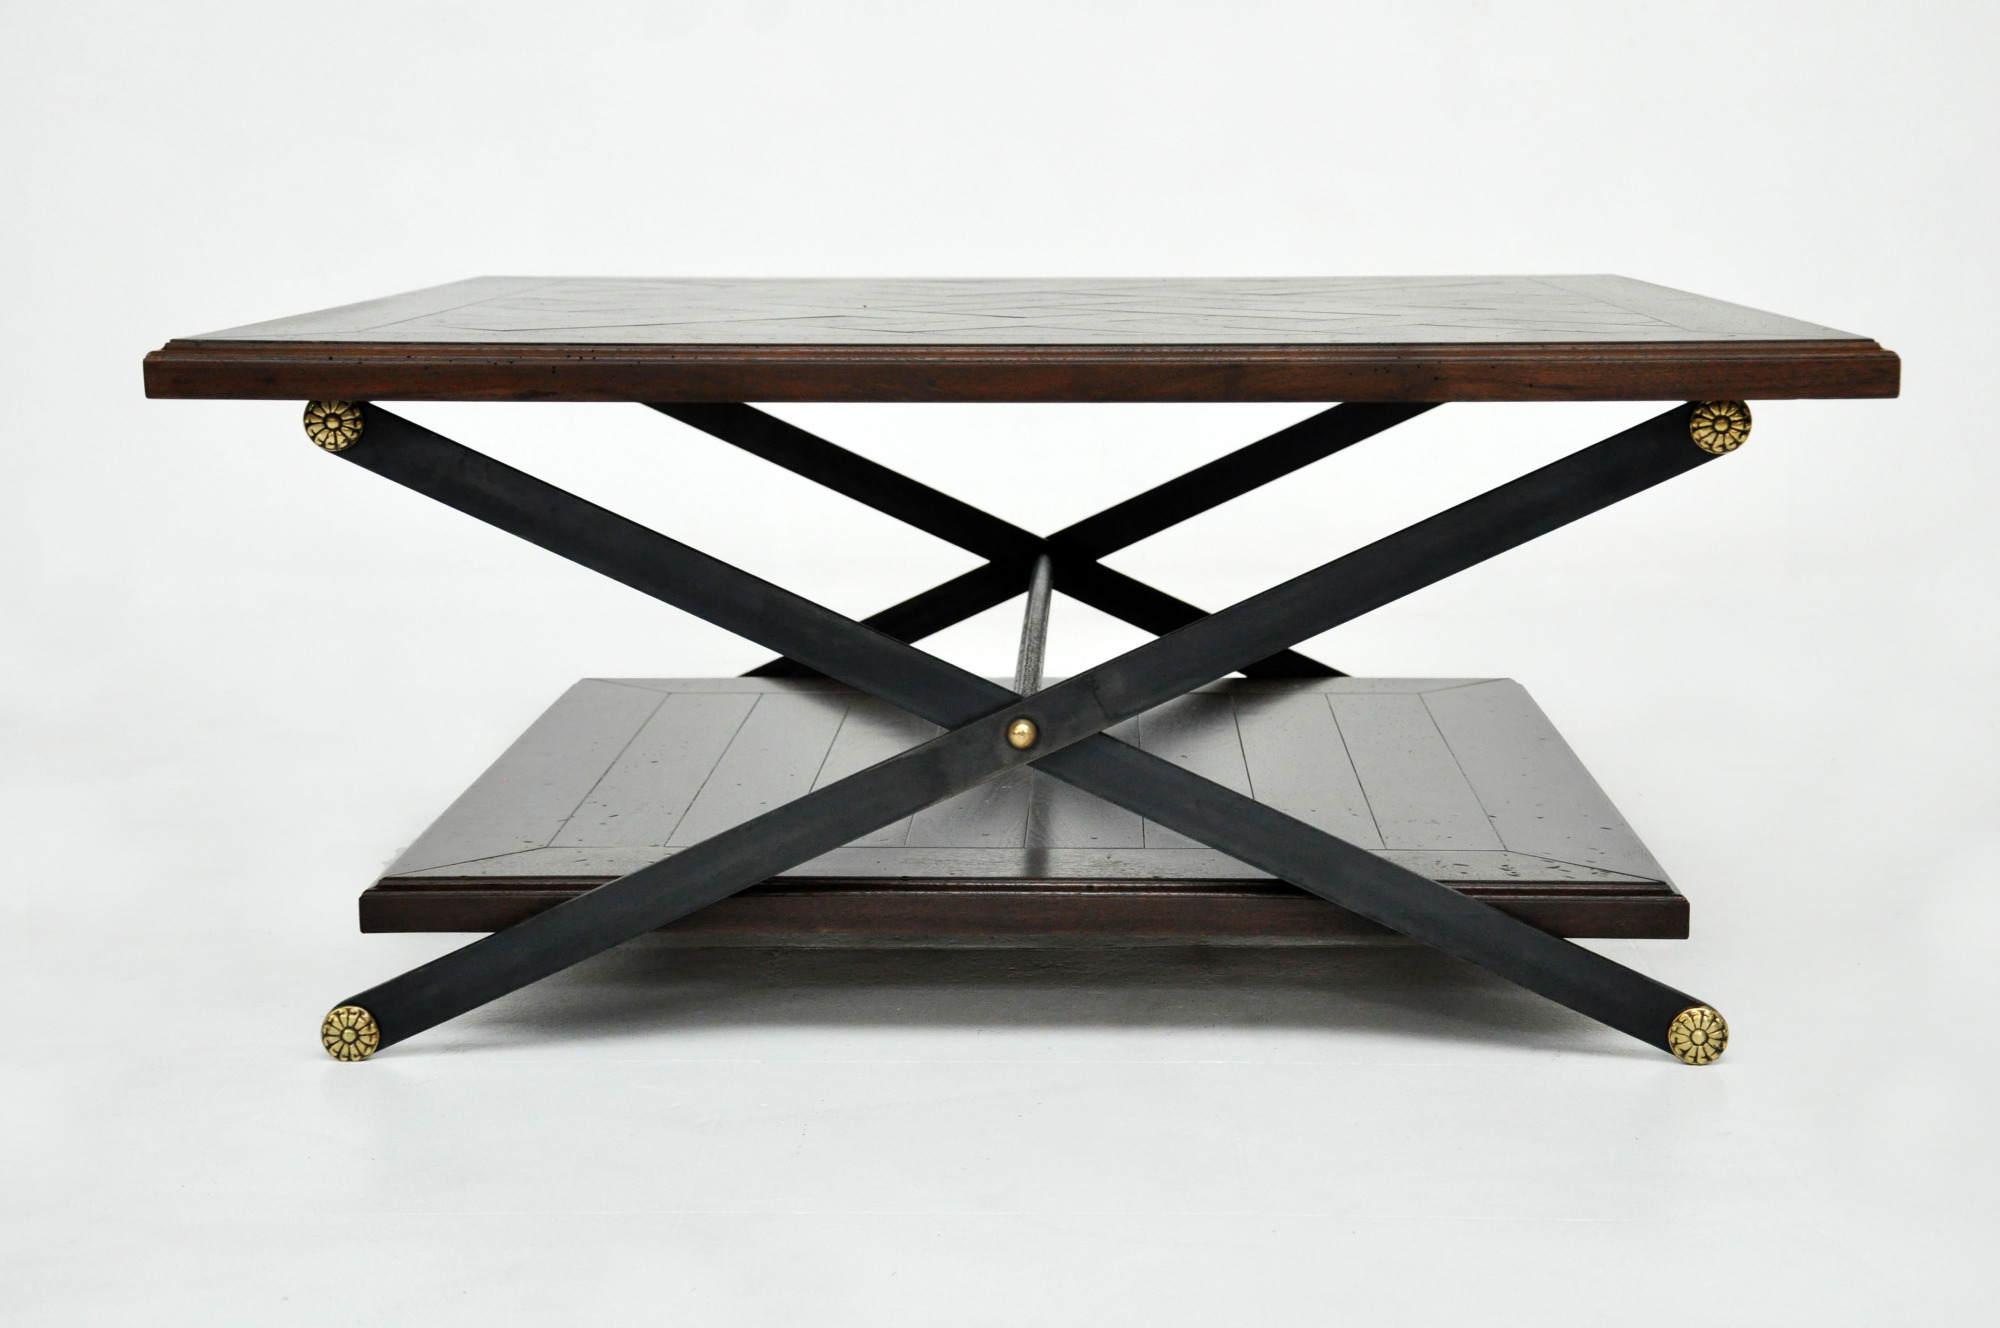 """Chevron 48"""" Coffee Tables With Fashionable Patterned Inlay – Paul Lewin (View 6 of 19)"""